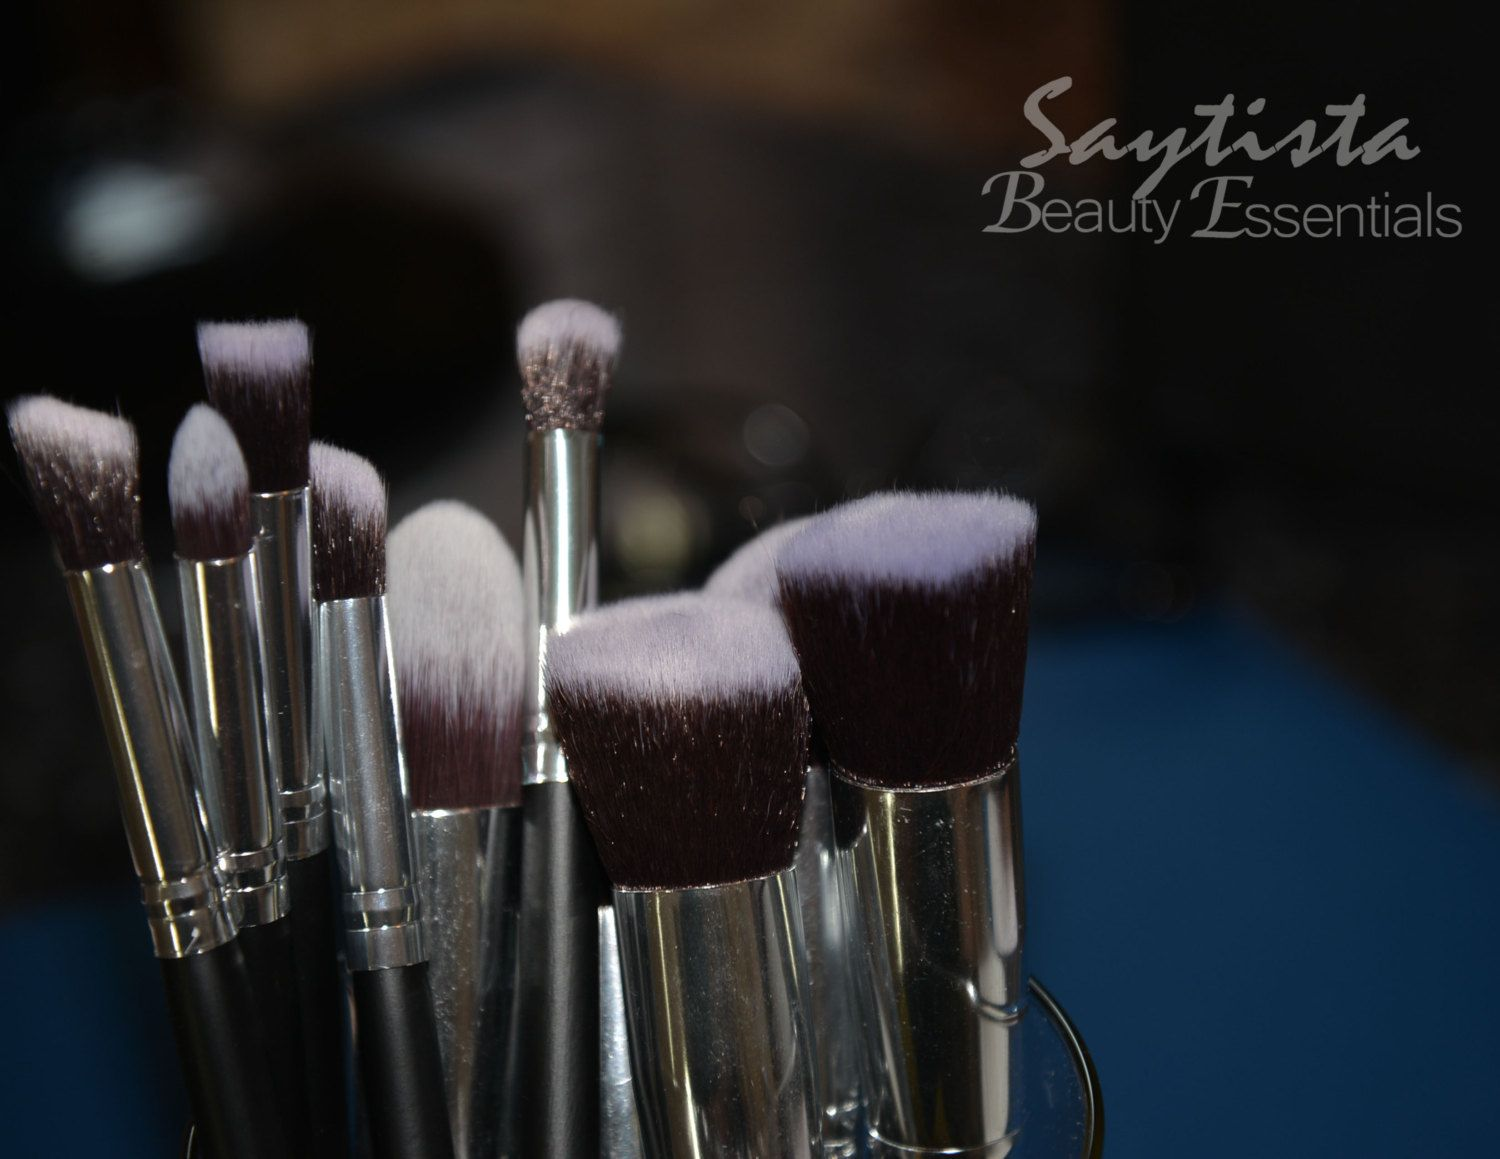 Silver Professional Quality 10 Piece Brushes by SaytistaBeauty on Etsy